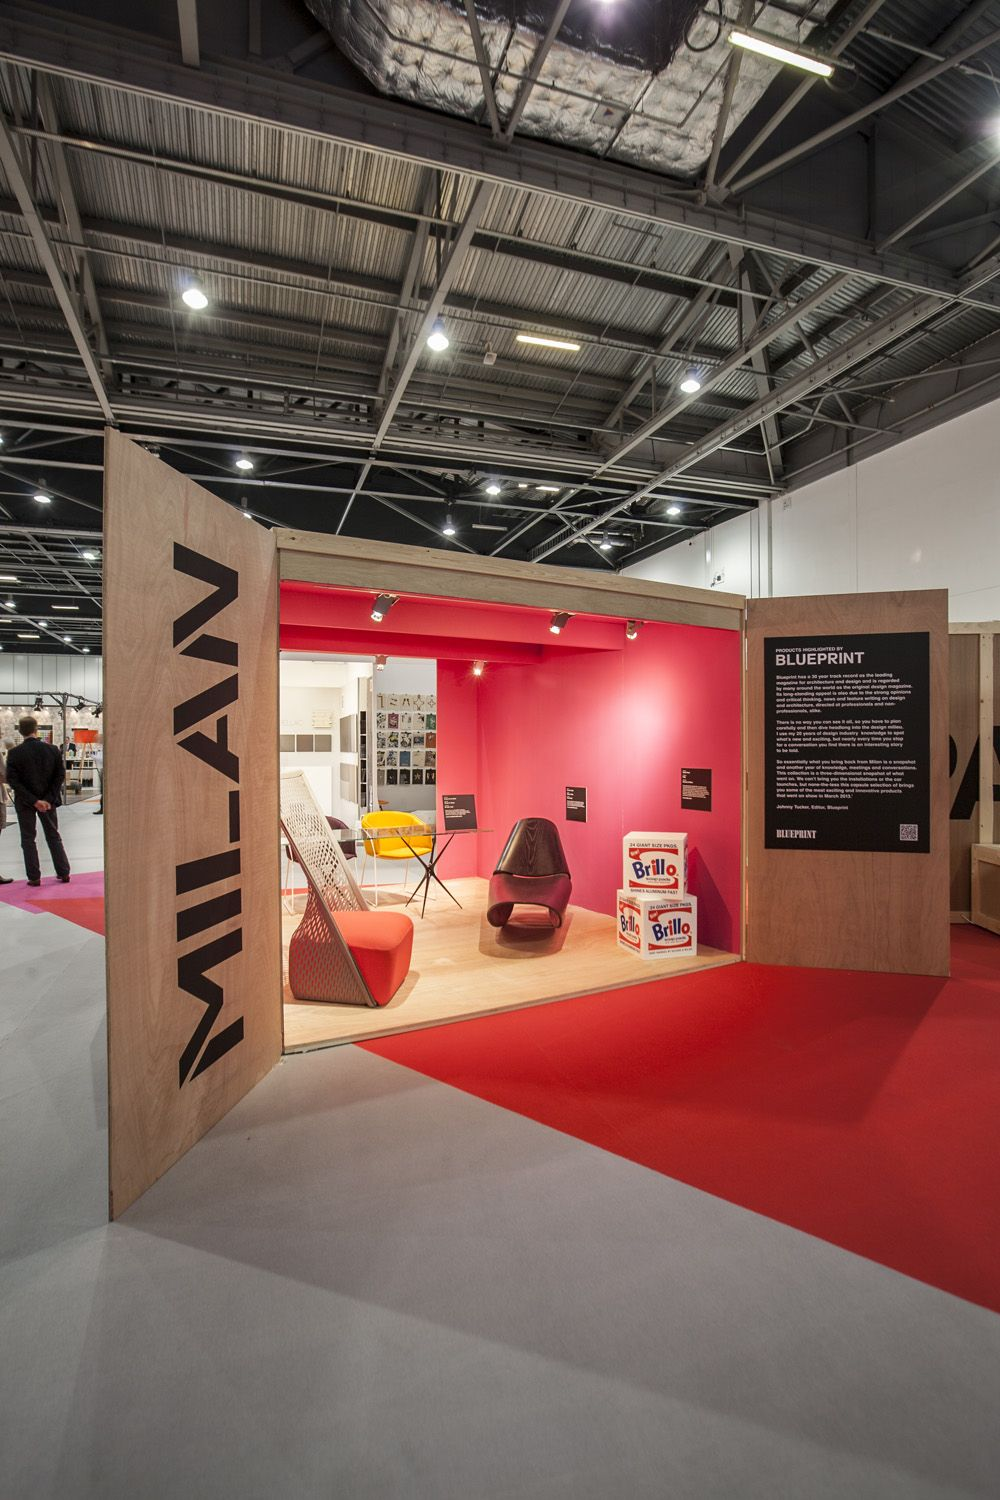 Exhibition Stand Carpet : The doors facing outwards with the use of carpet creates an